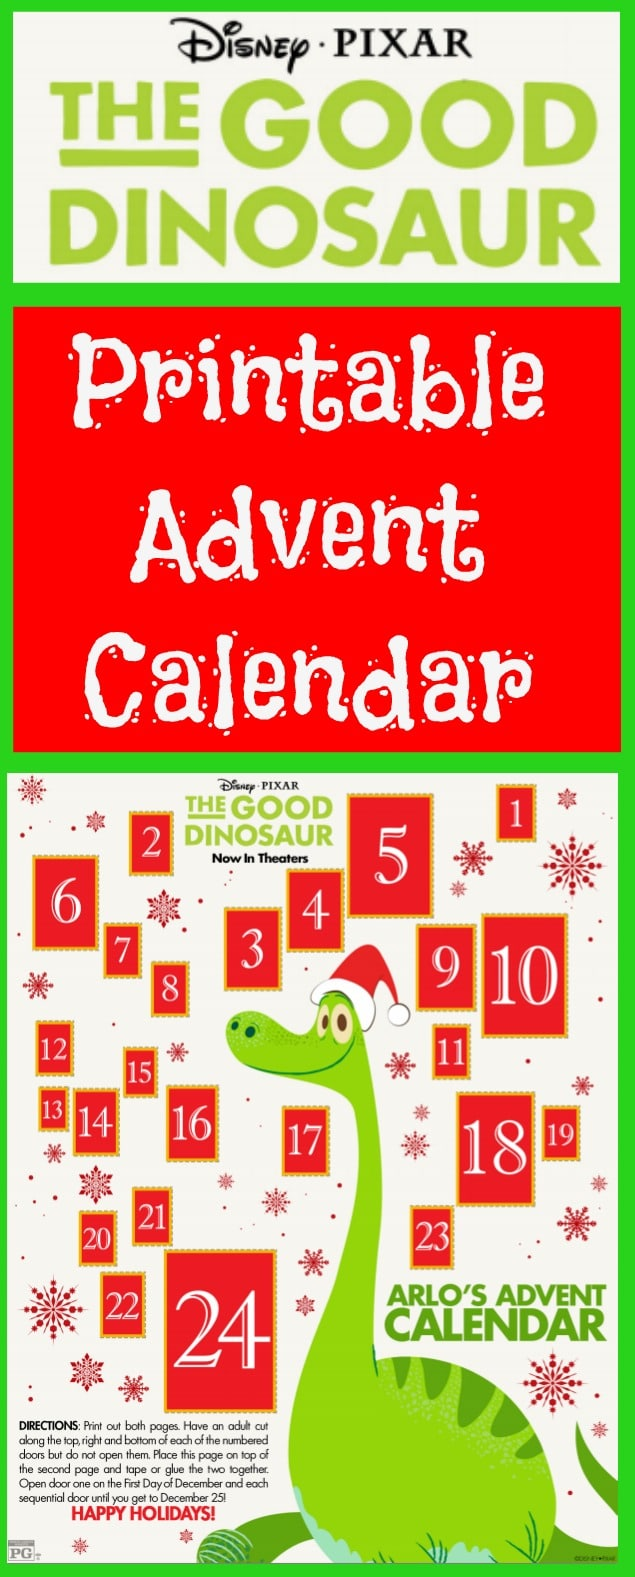 This free printable The Good Dinosaur Printable Advent Calendar counts down the days until Christmas revealing one of Forrest Woodbush's critters each day.